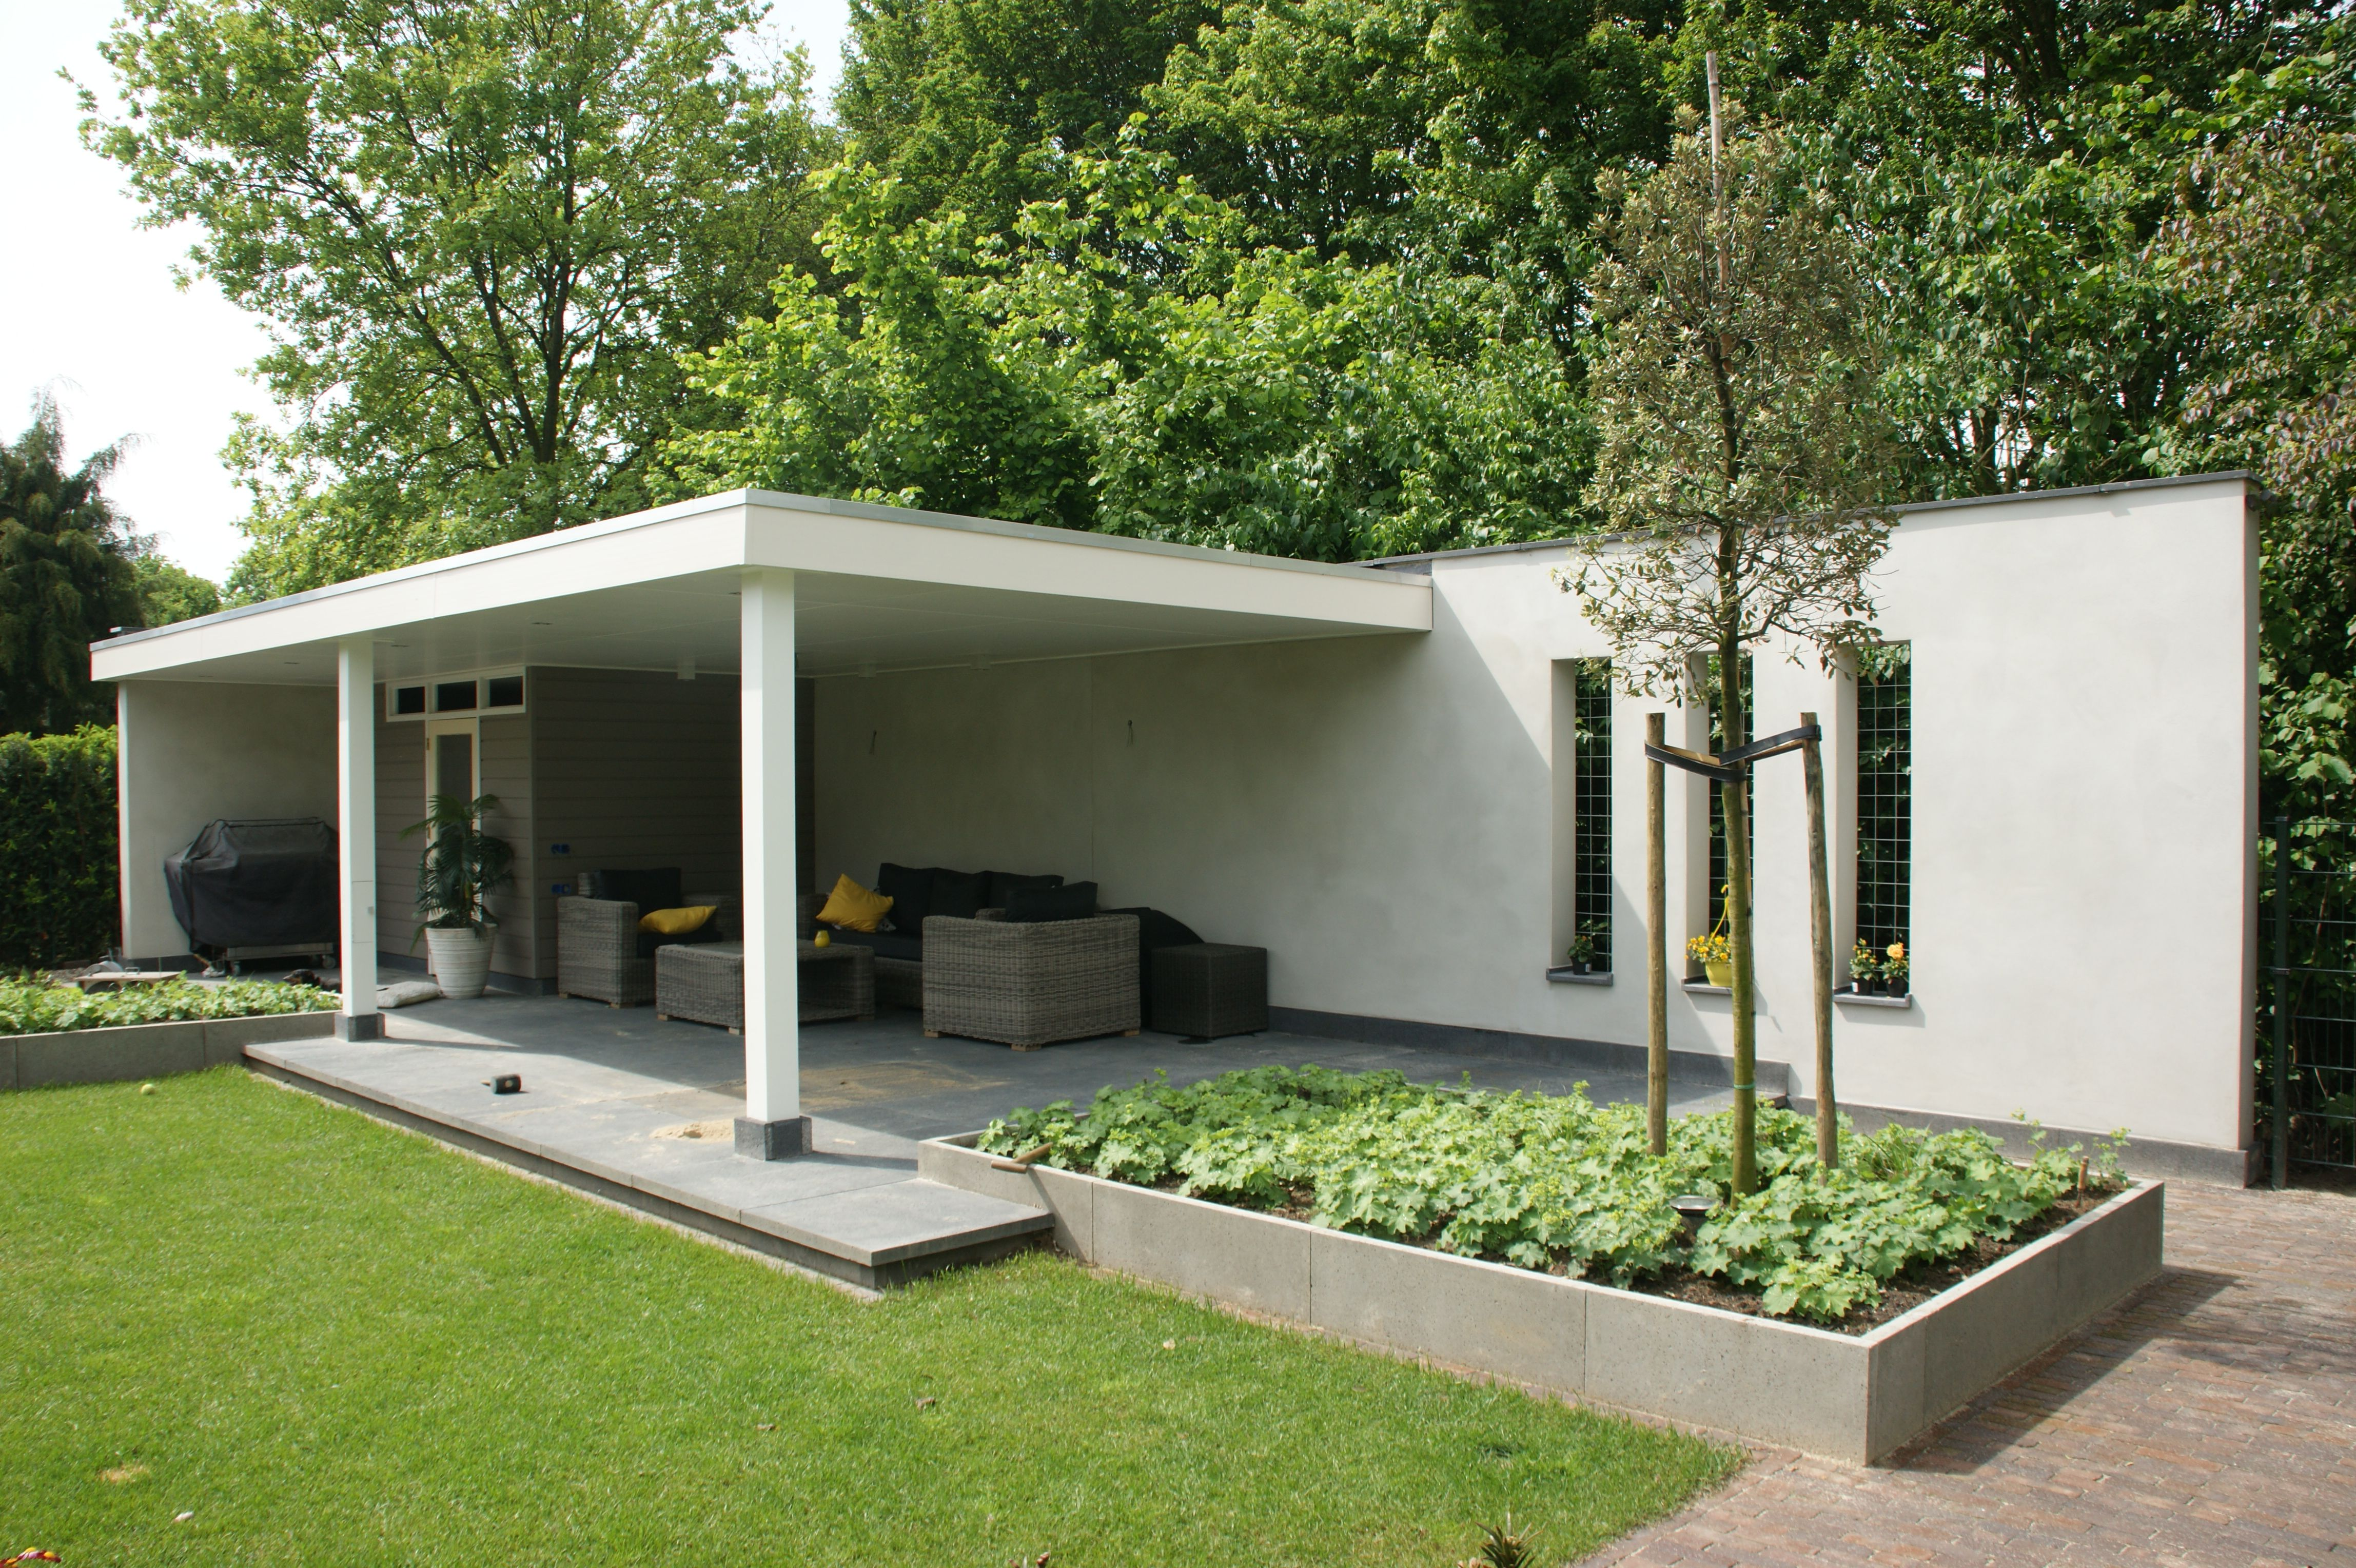 1000 images about buitenkamer on pinterest verandas met and tuin - Tent tuin pergola ...